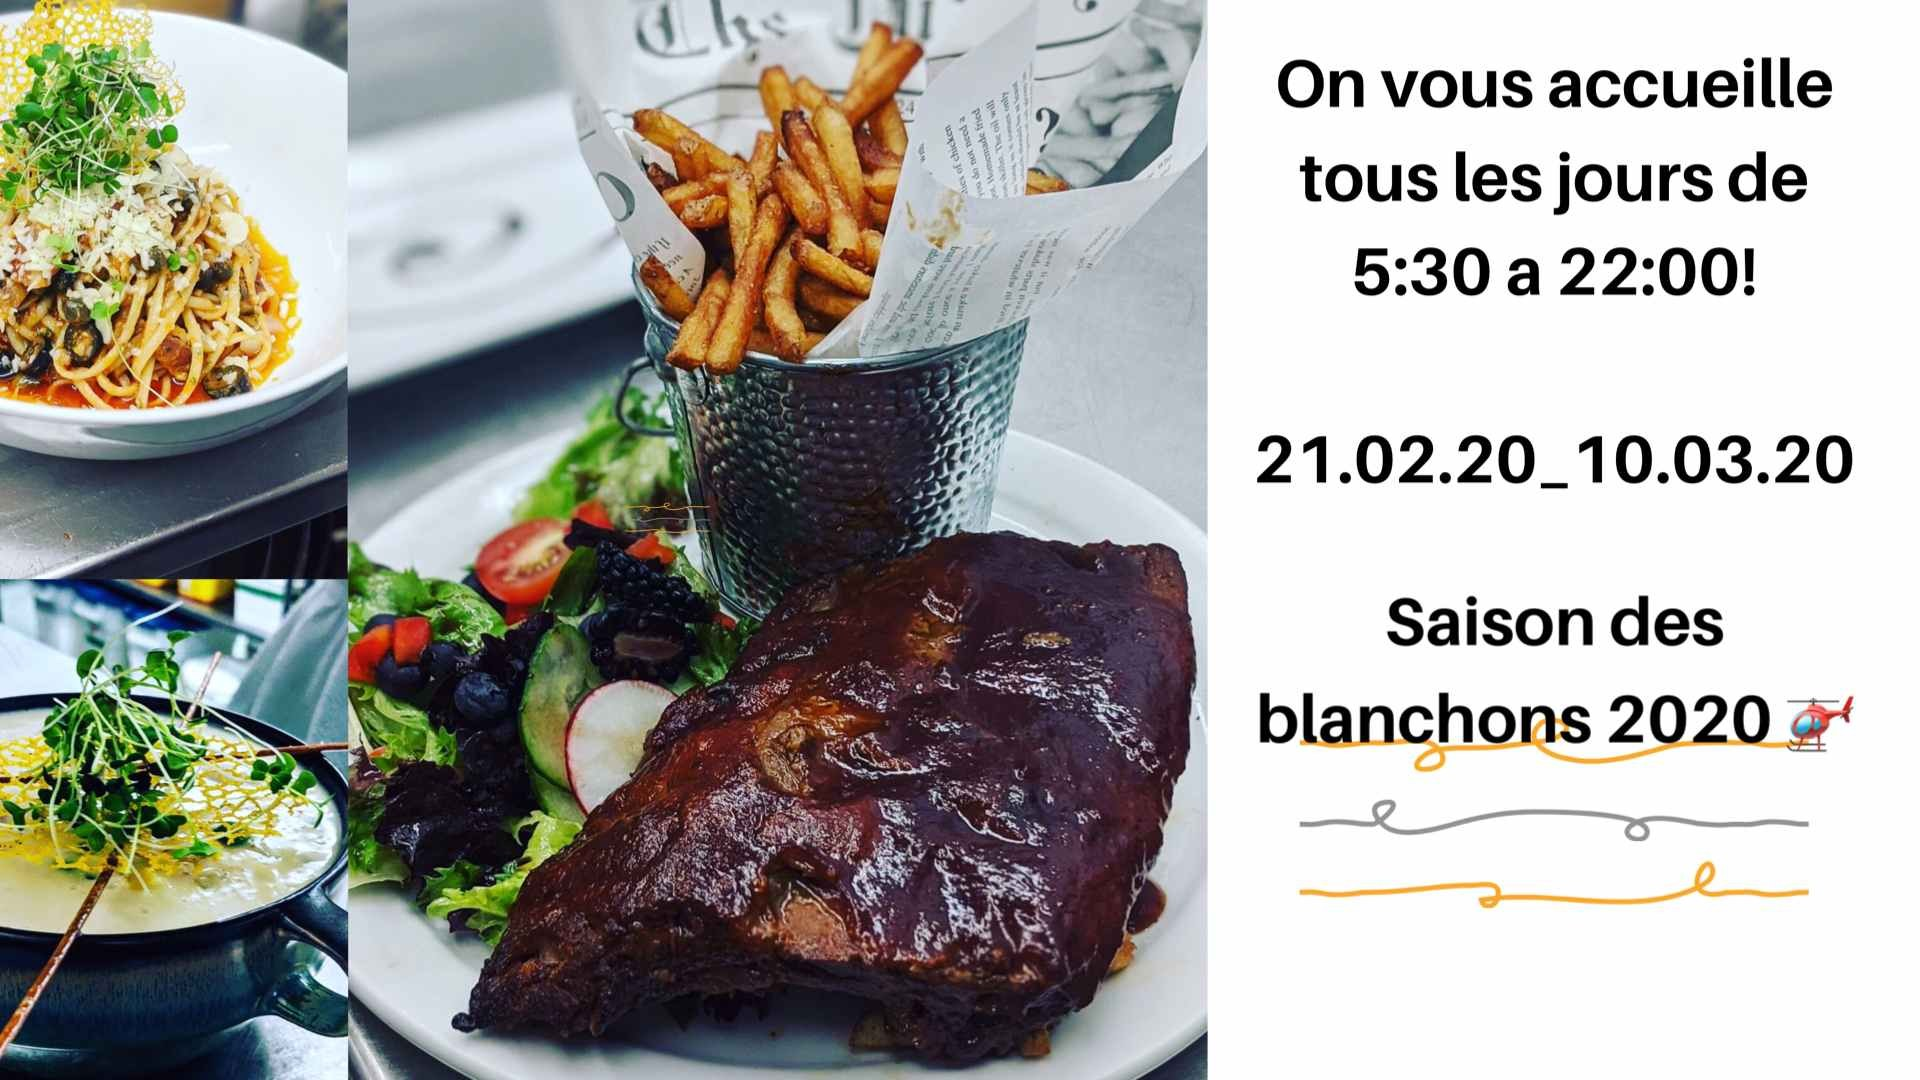 resto-bistro-hotels-accents-blanchons-2020